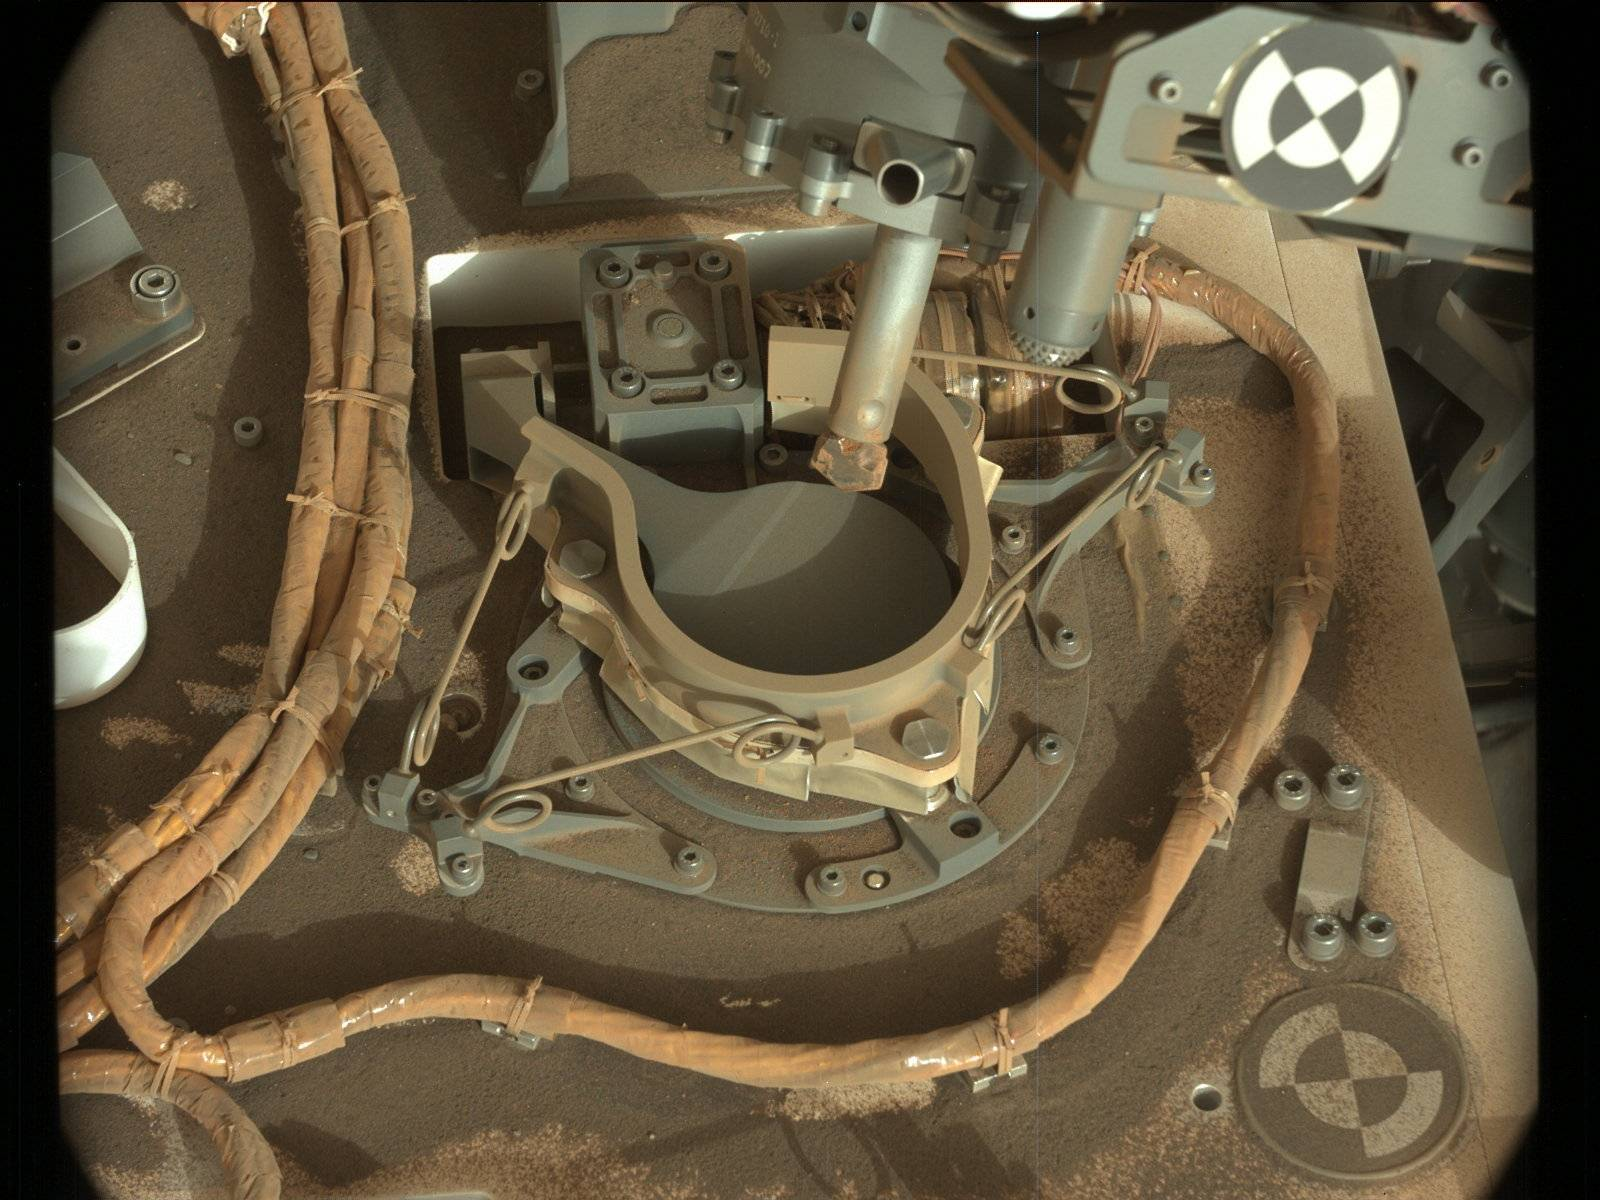 mars rover curiosity live camera - photo #37